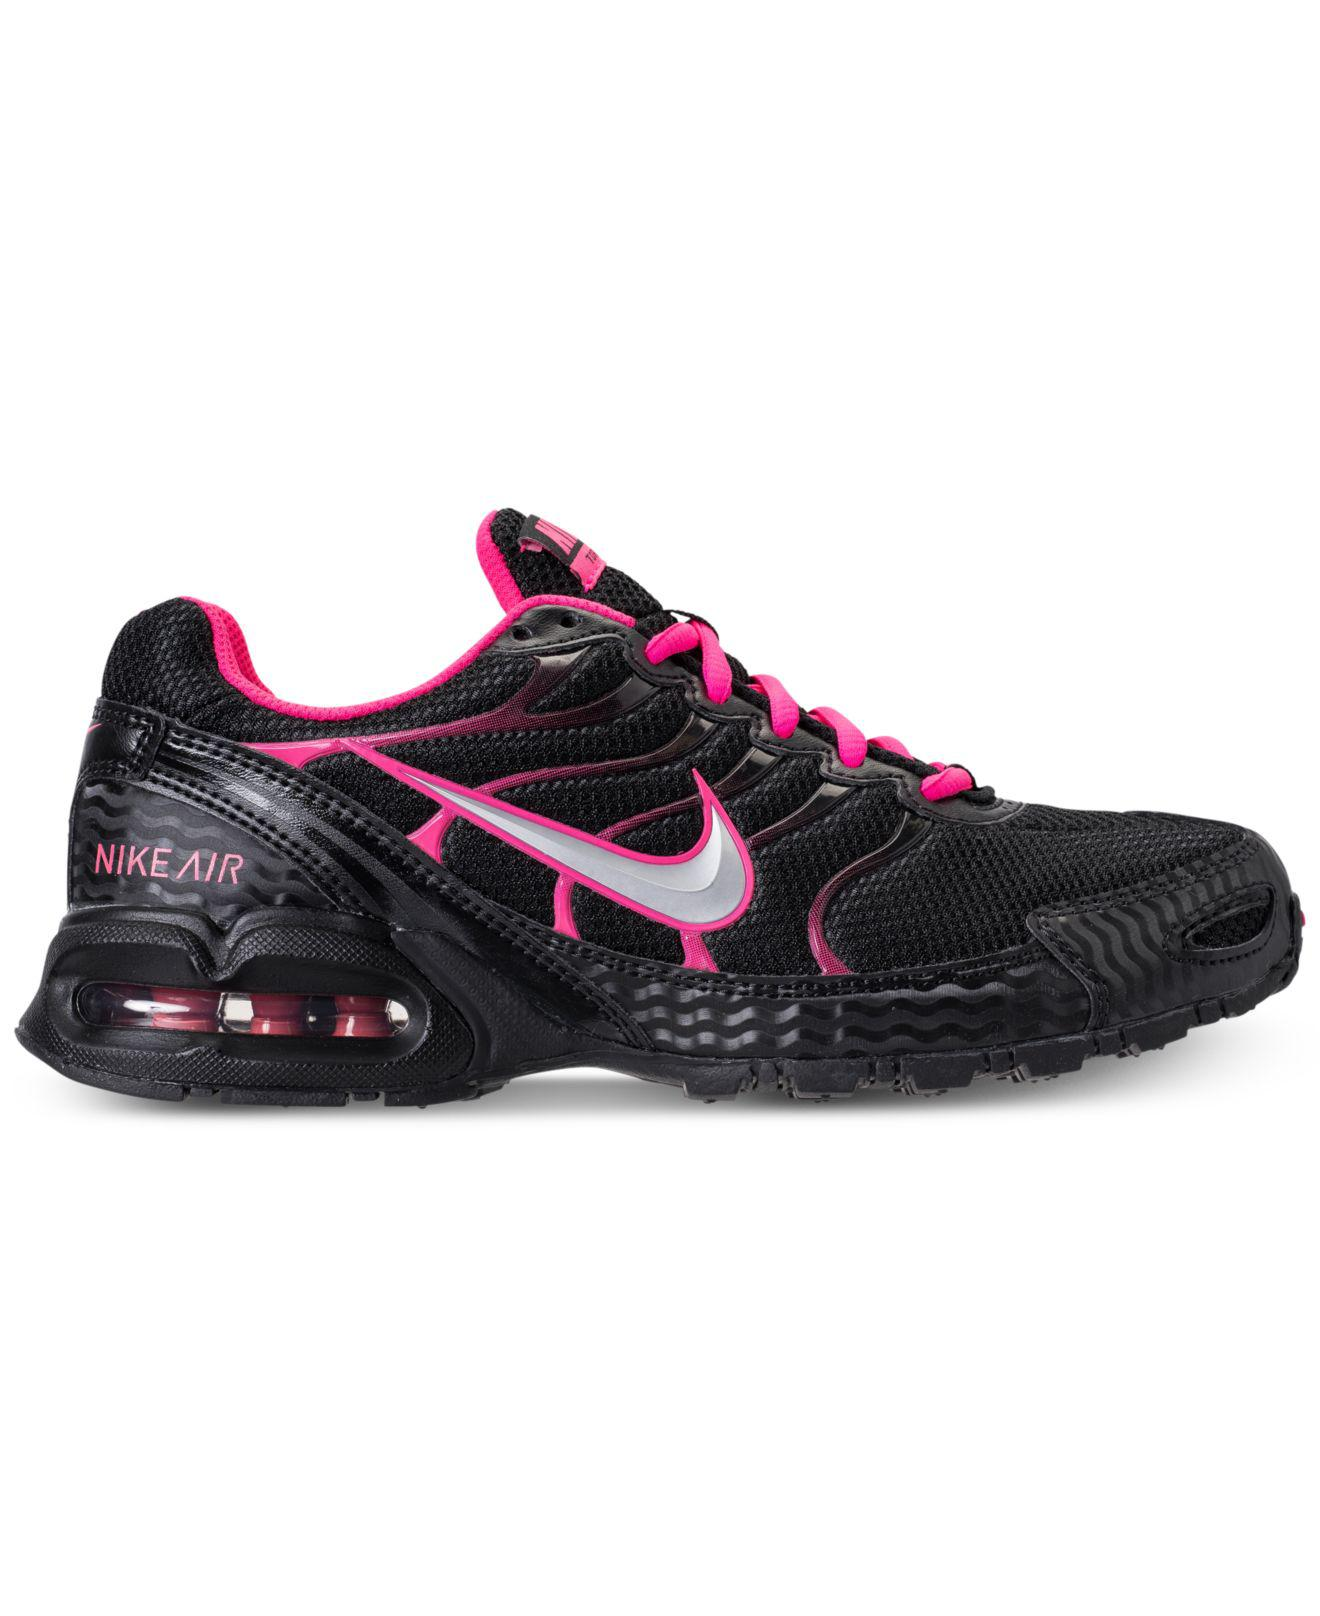 5bf64d14b2518 Lyst - Nike Women s Air Max Torch 4 Running Sneakers From Finish Line in  Black